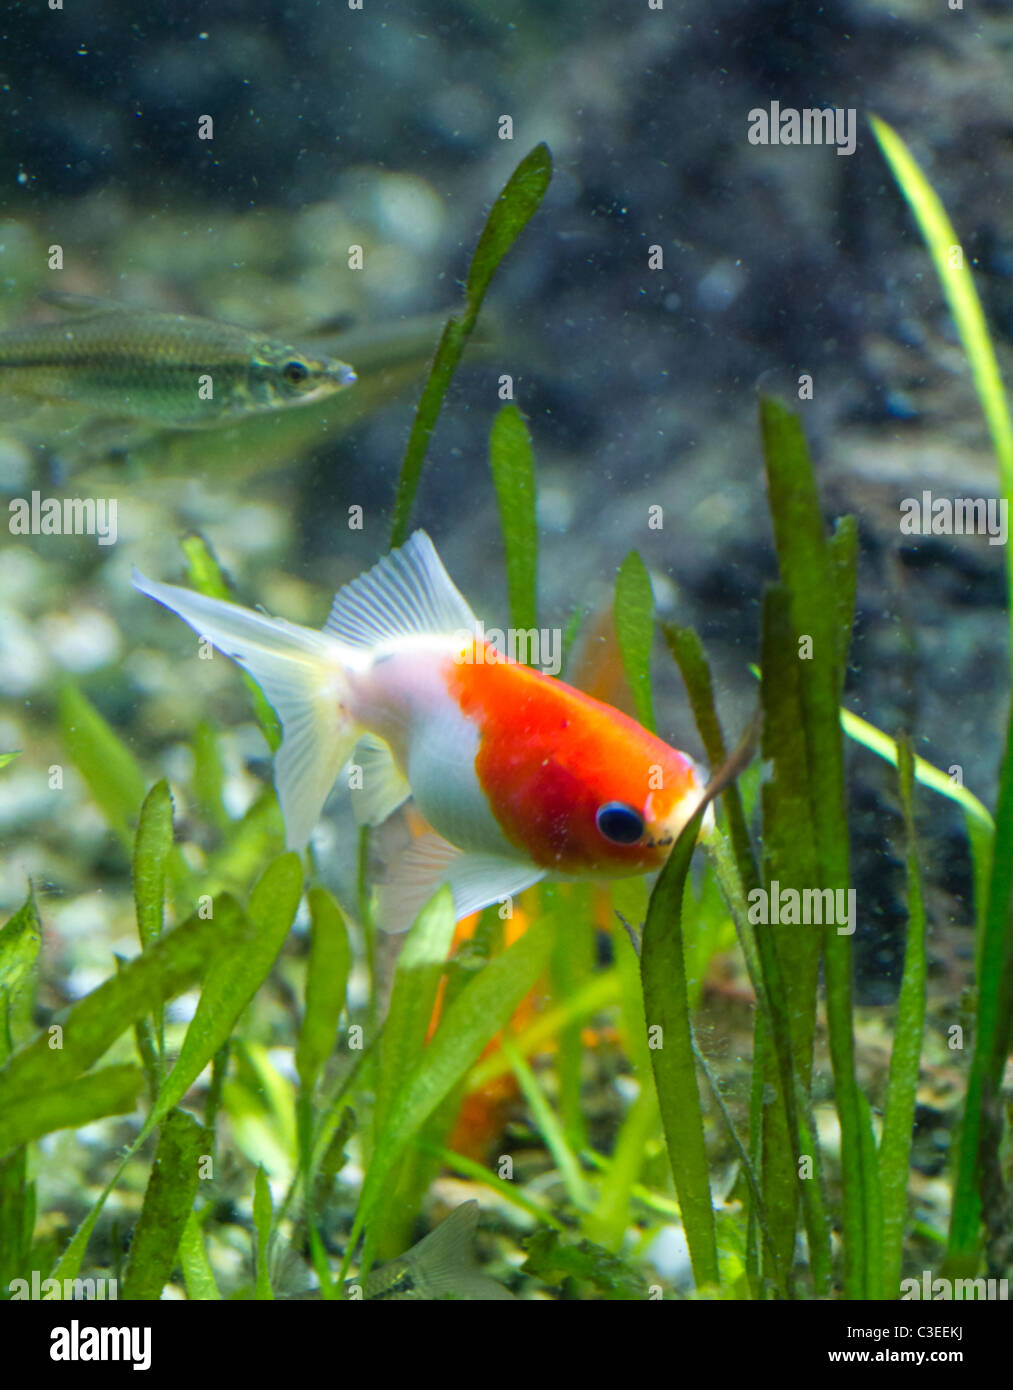 Exotic Colored Fish Stock Photo: 36583558 - Alamy